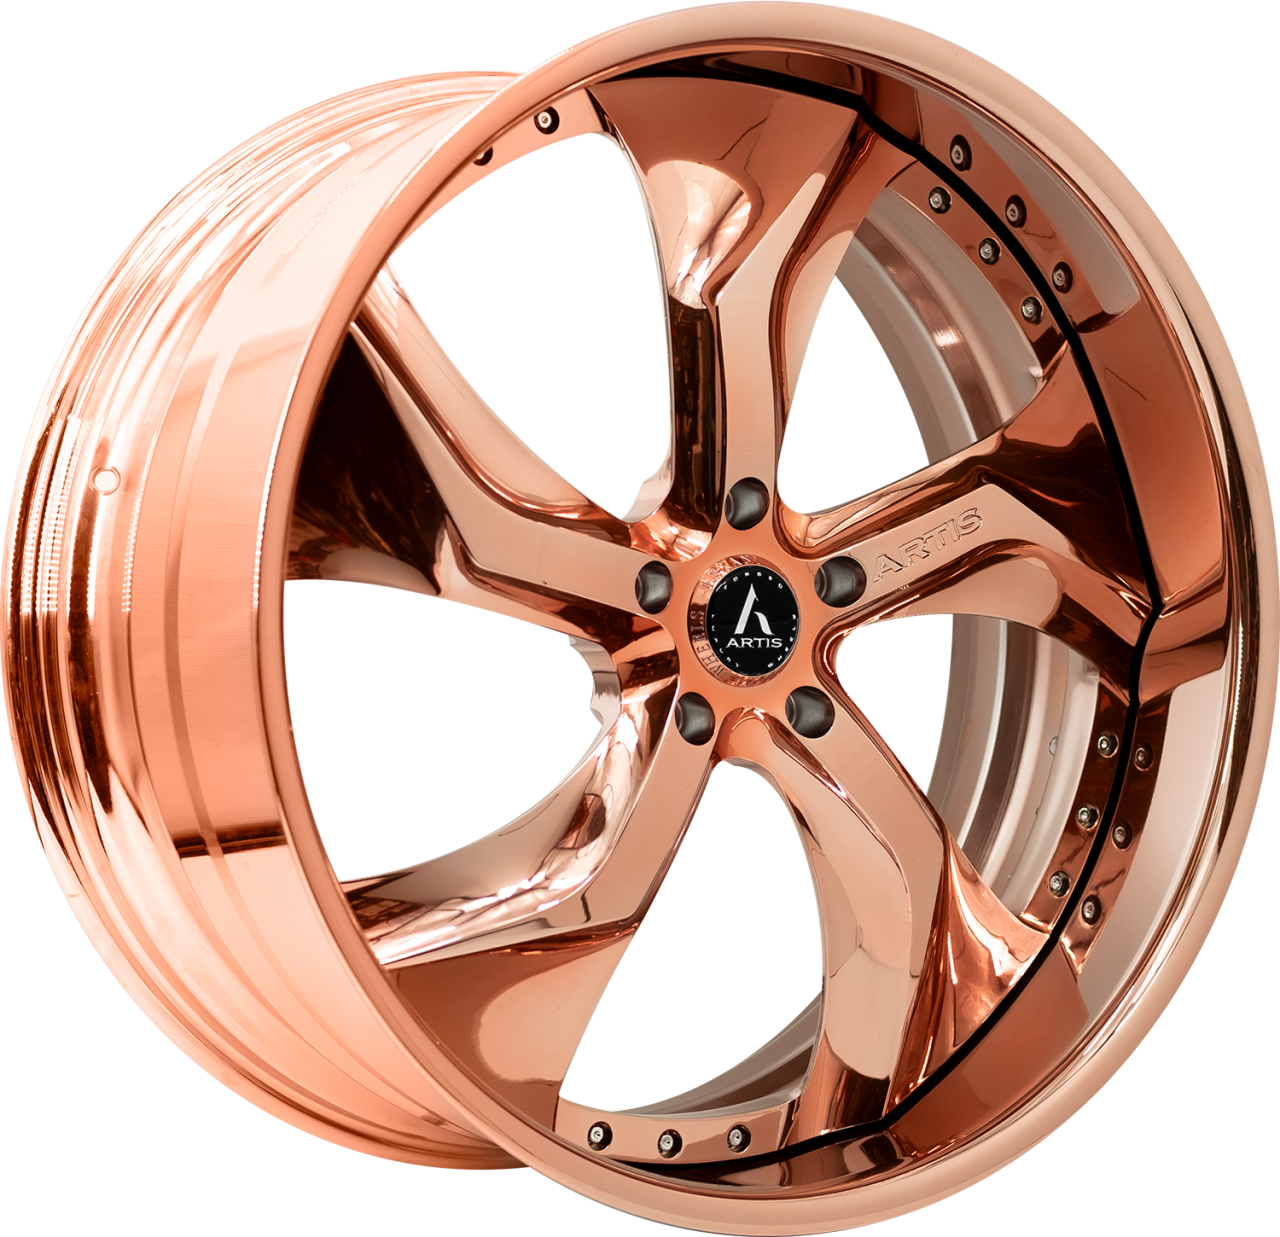 Artis Forged Bully wheel with Rose Gold finish